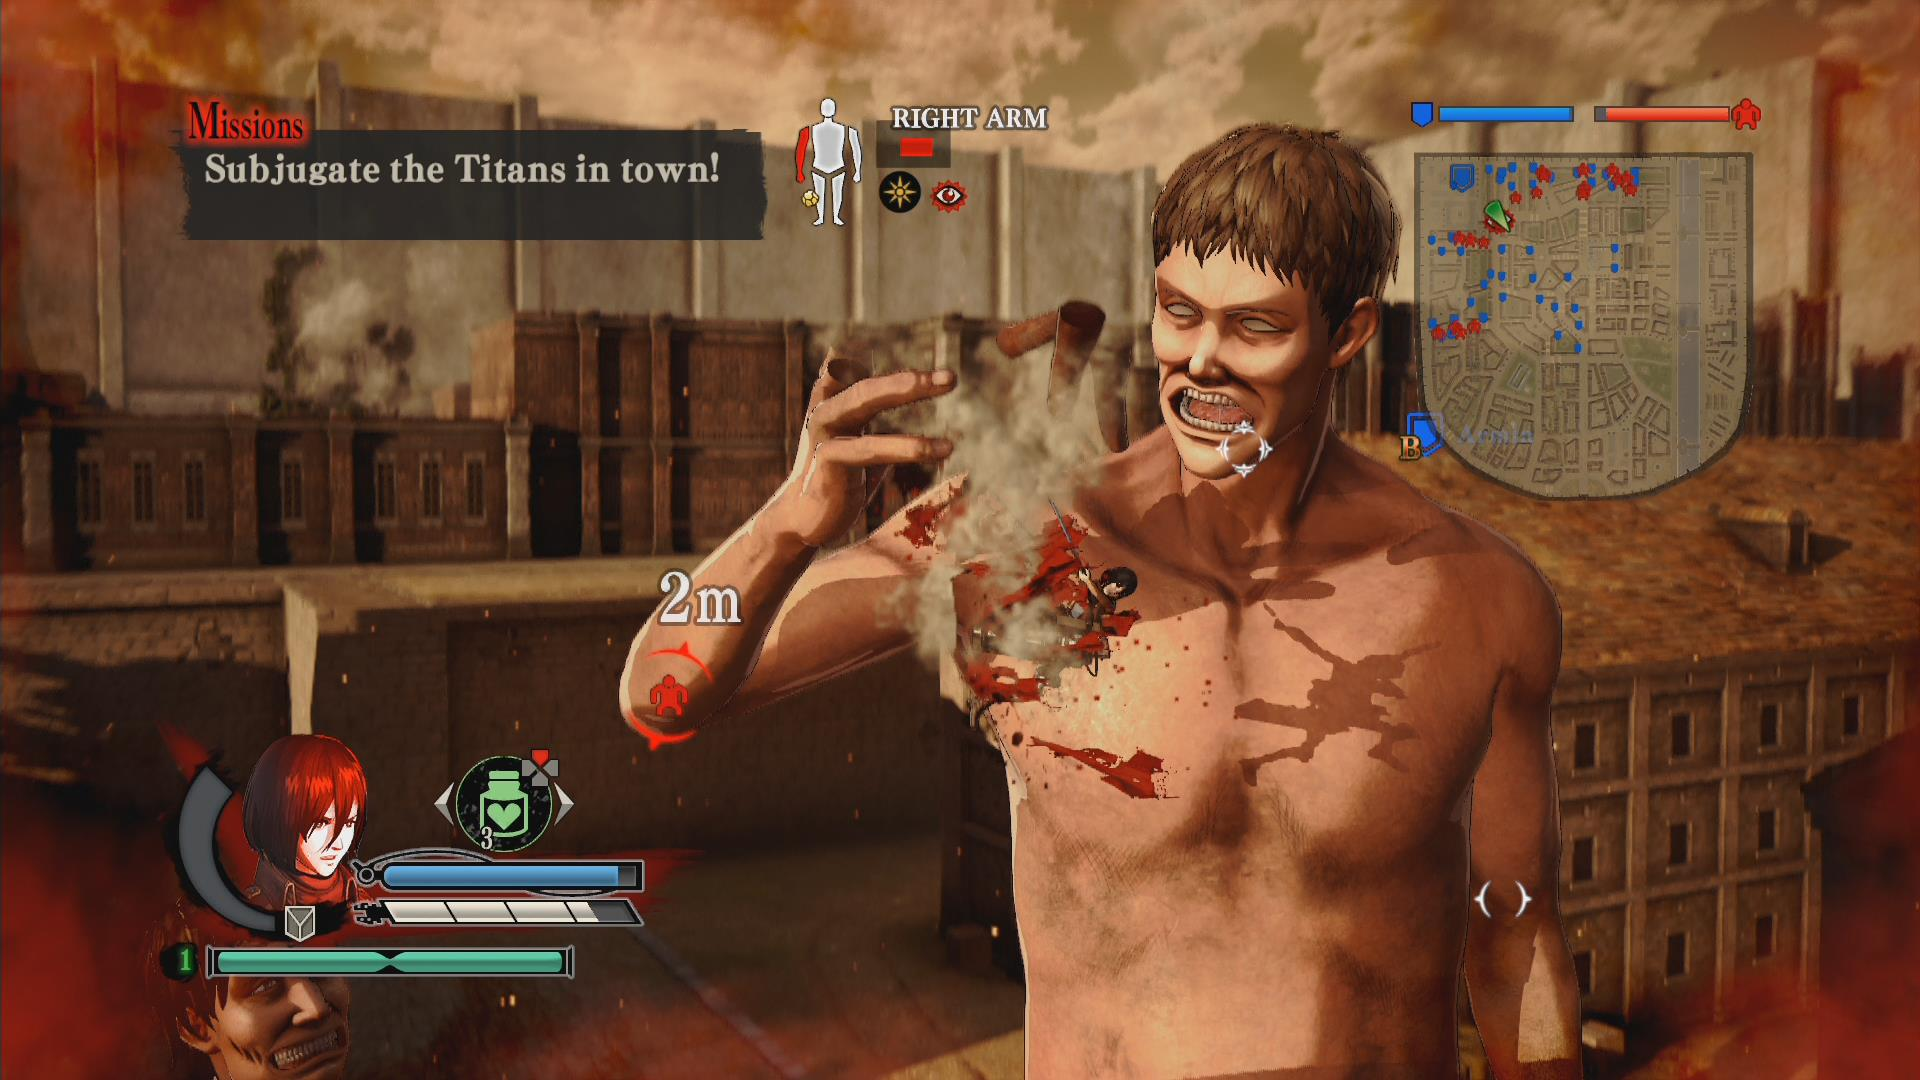 attack-on-titan-game-screenshot- (6)